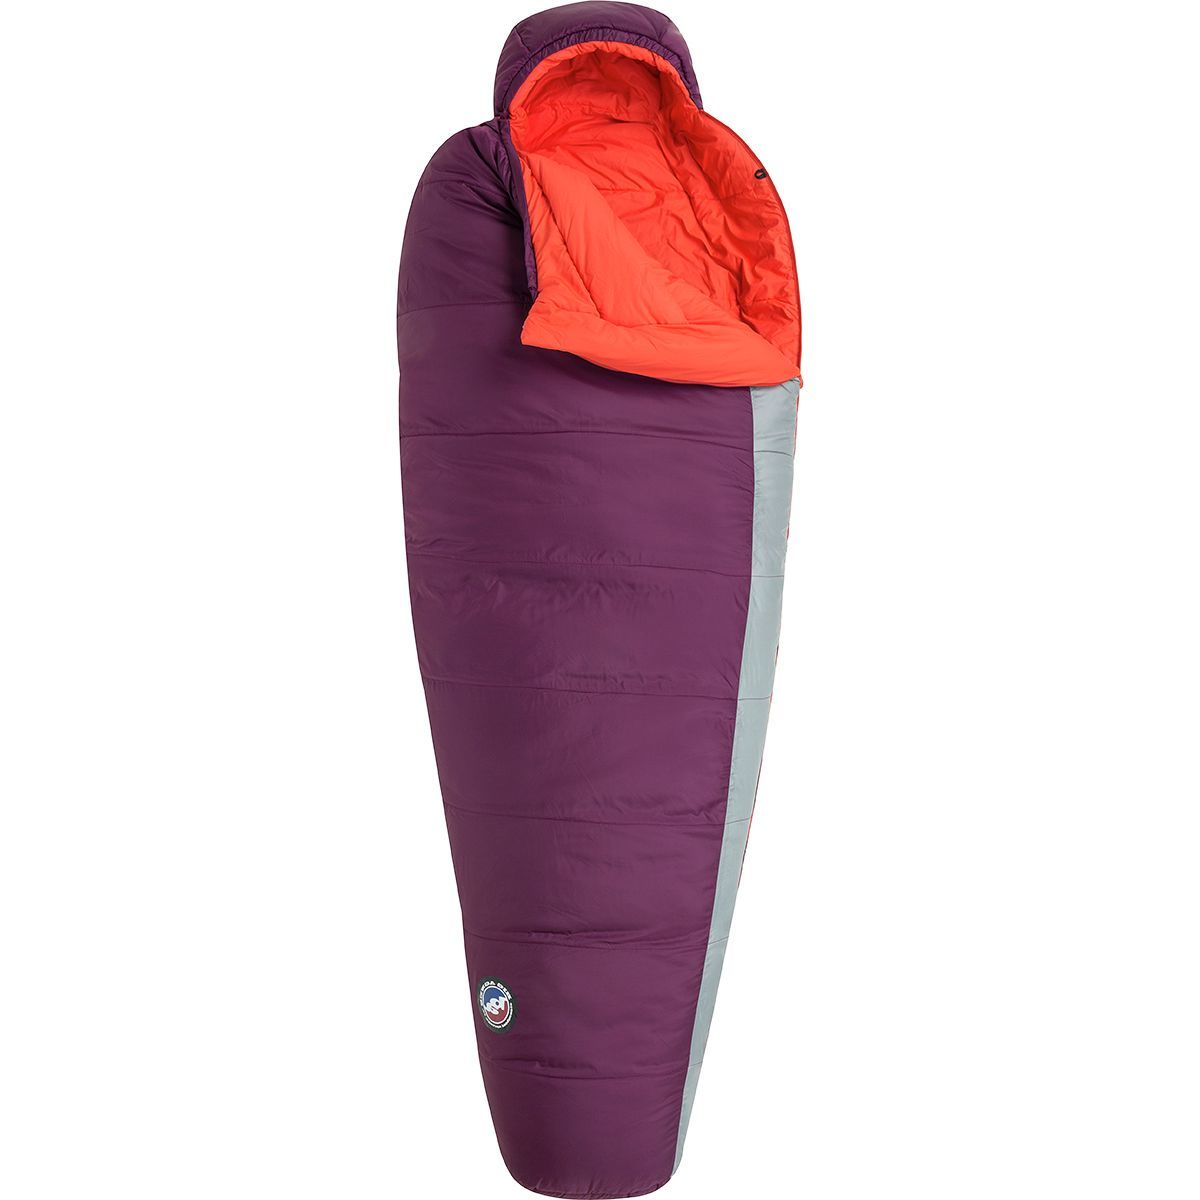 Big Agnes Blue Lake Sleeping Bag: 25 Degree Synthetic - Women's